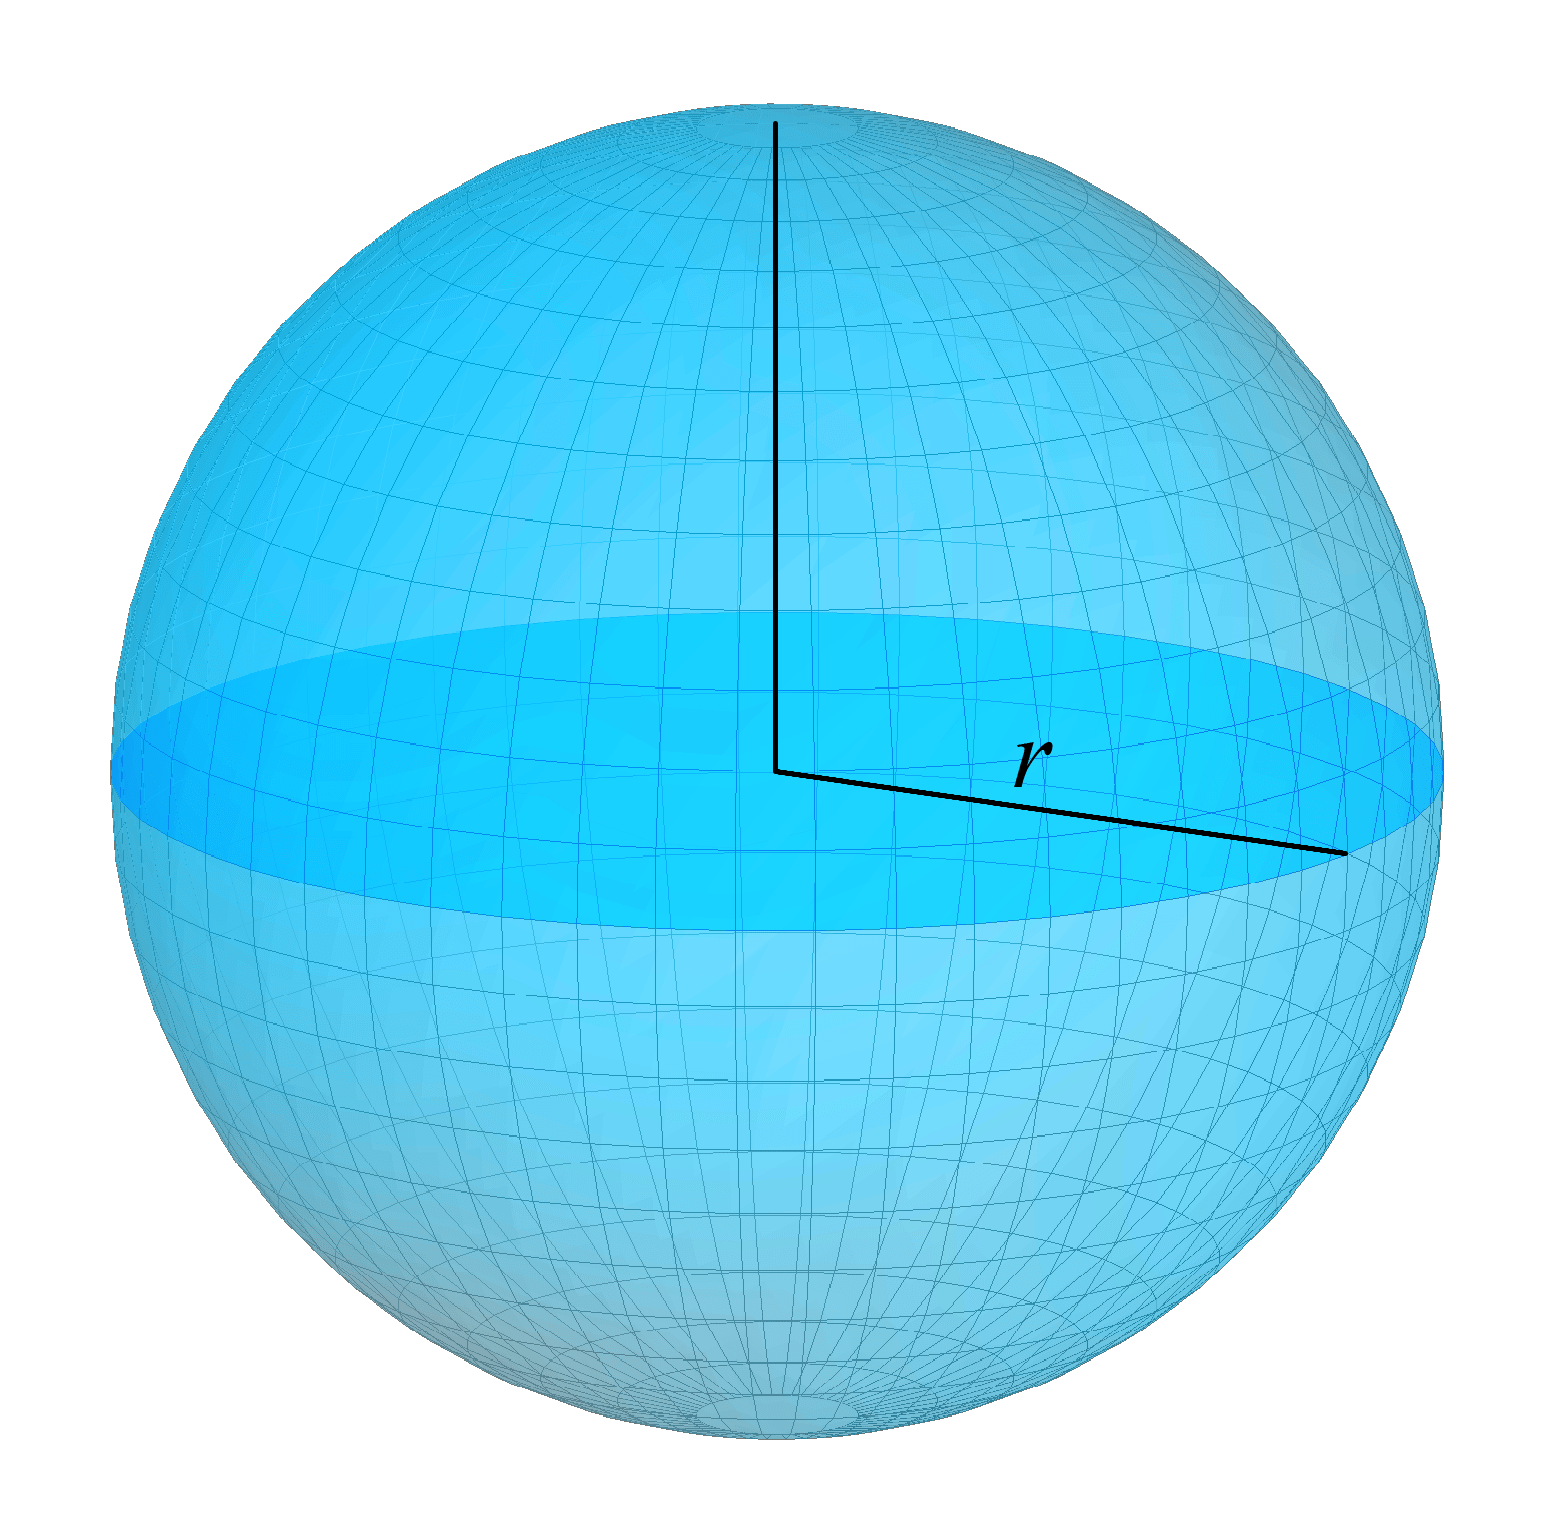 Area Of Sphere Volume Of Sphere